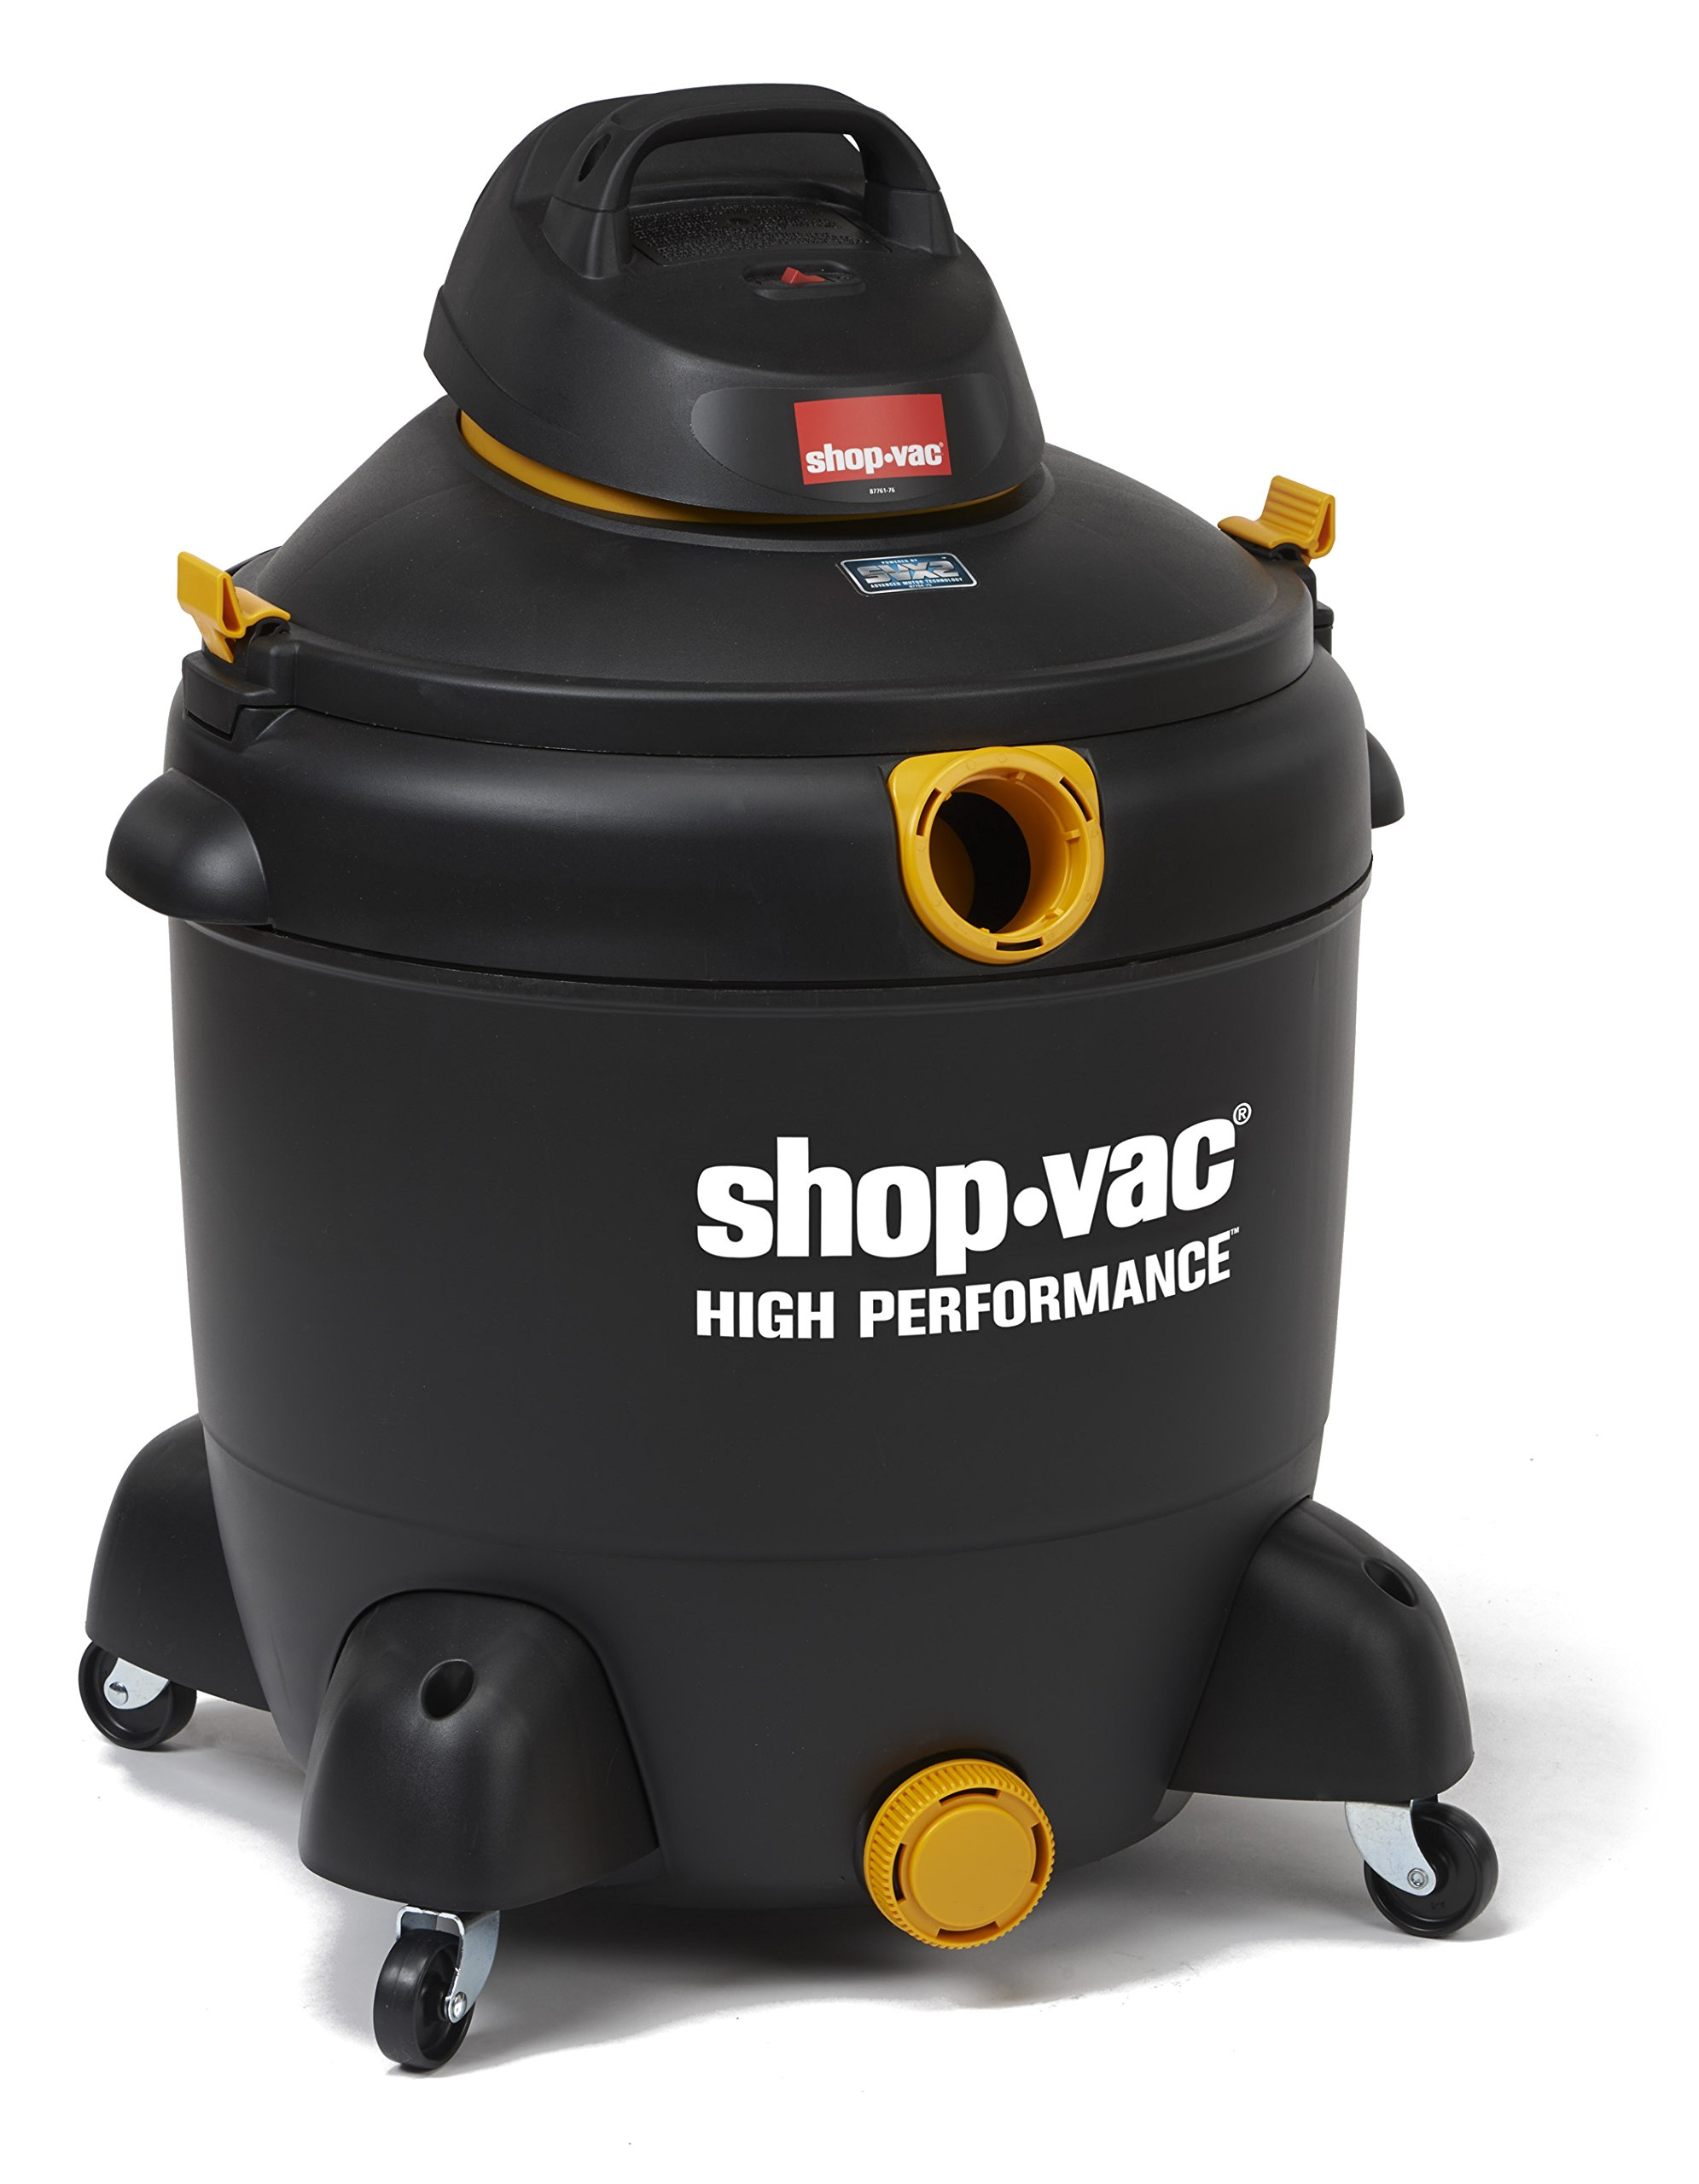 Shop-Vac 5987500 20 gallon 6.5 Peak HP High Performance Series Wet Dry Vacuum Black/Yellow by Shop-Vac